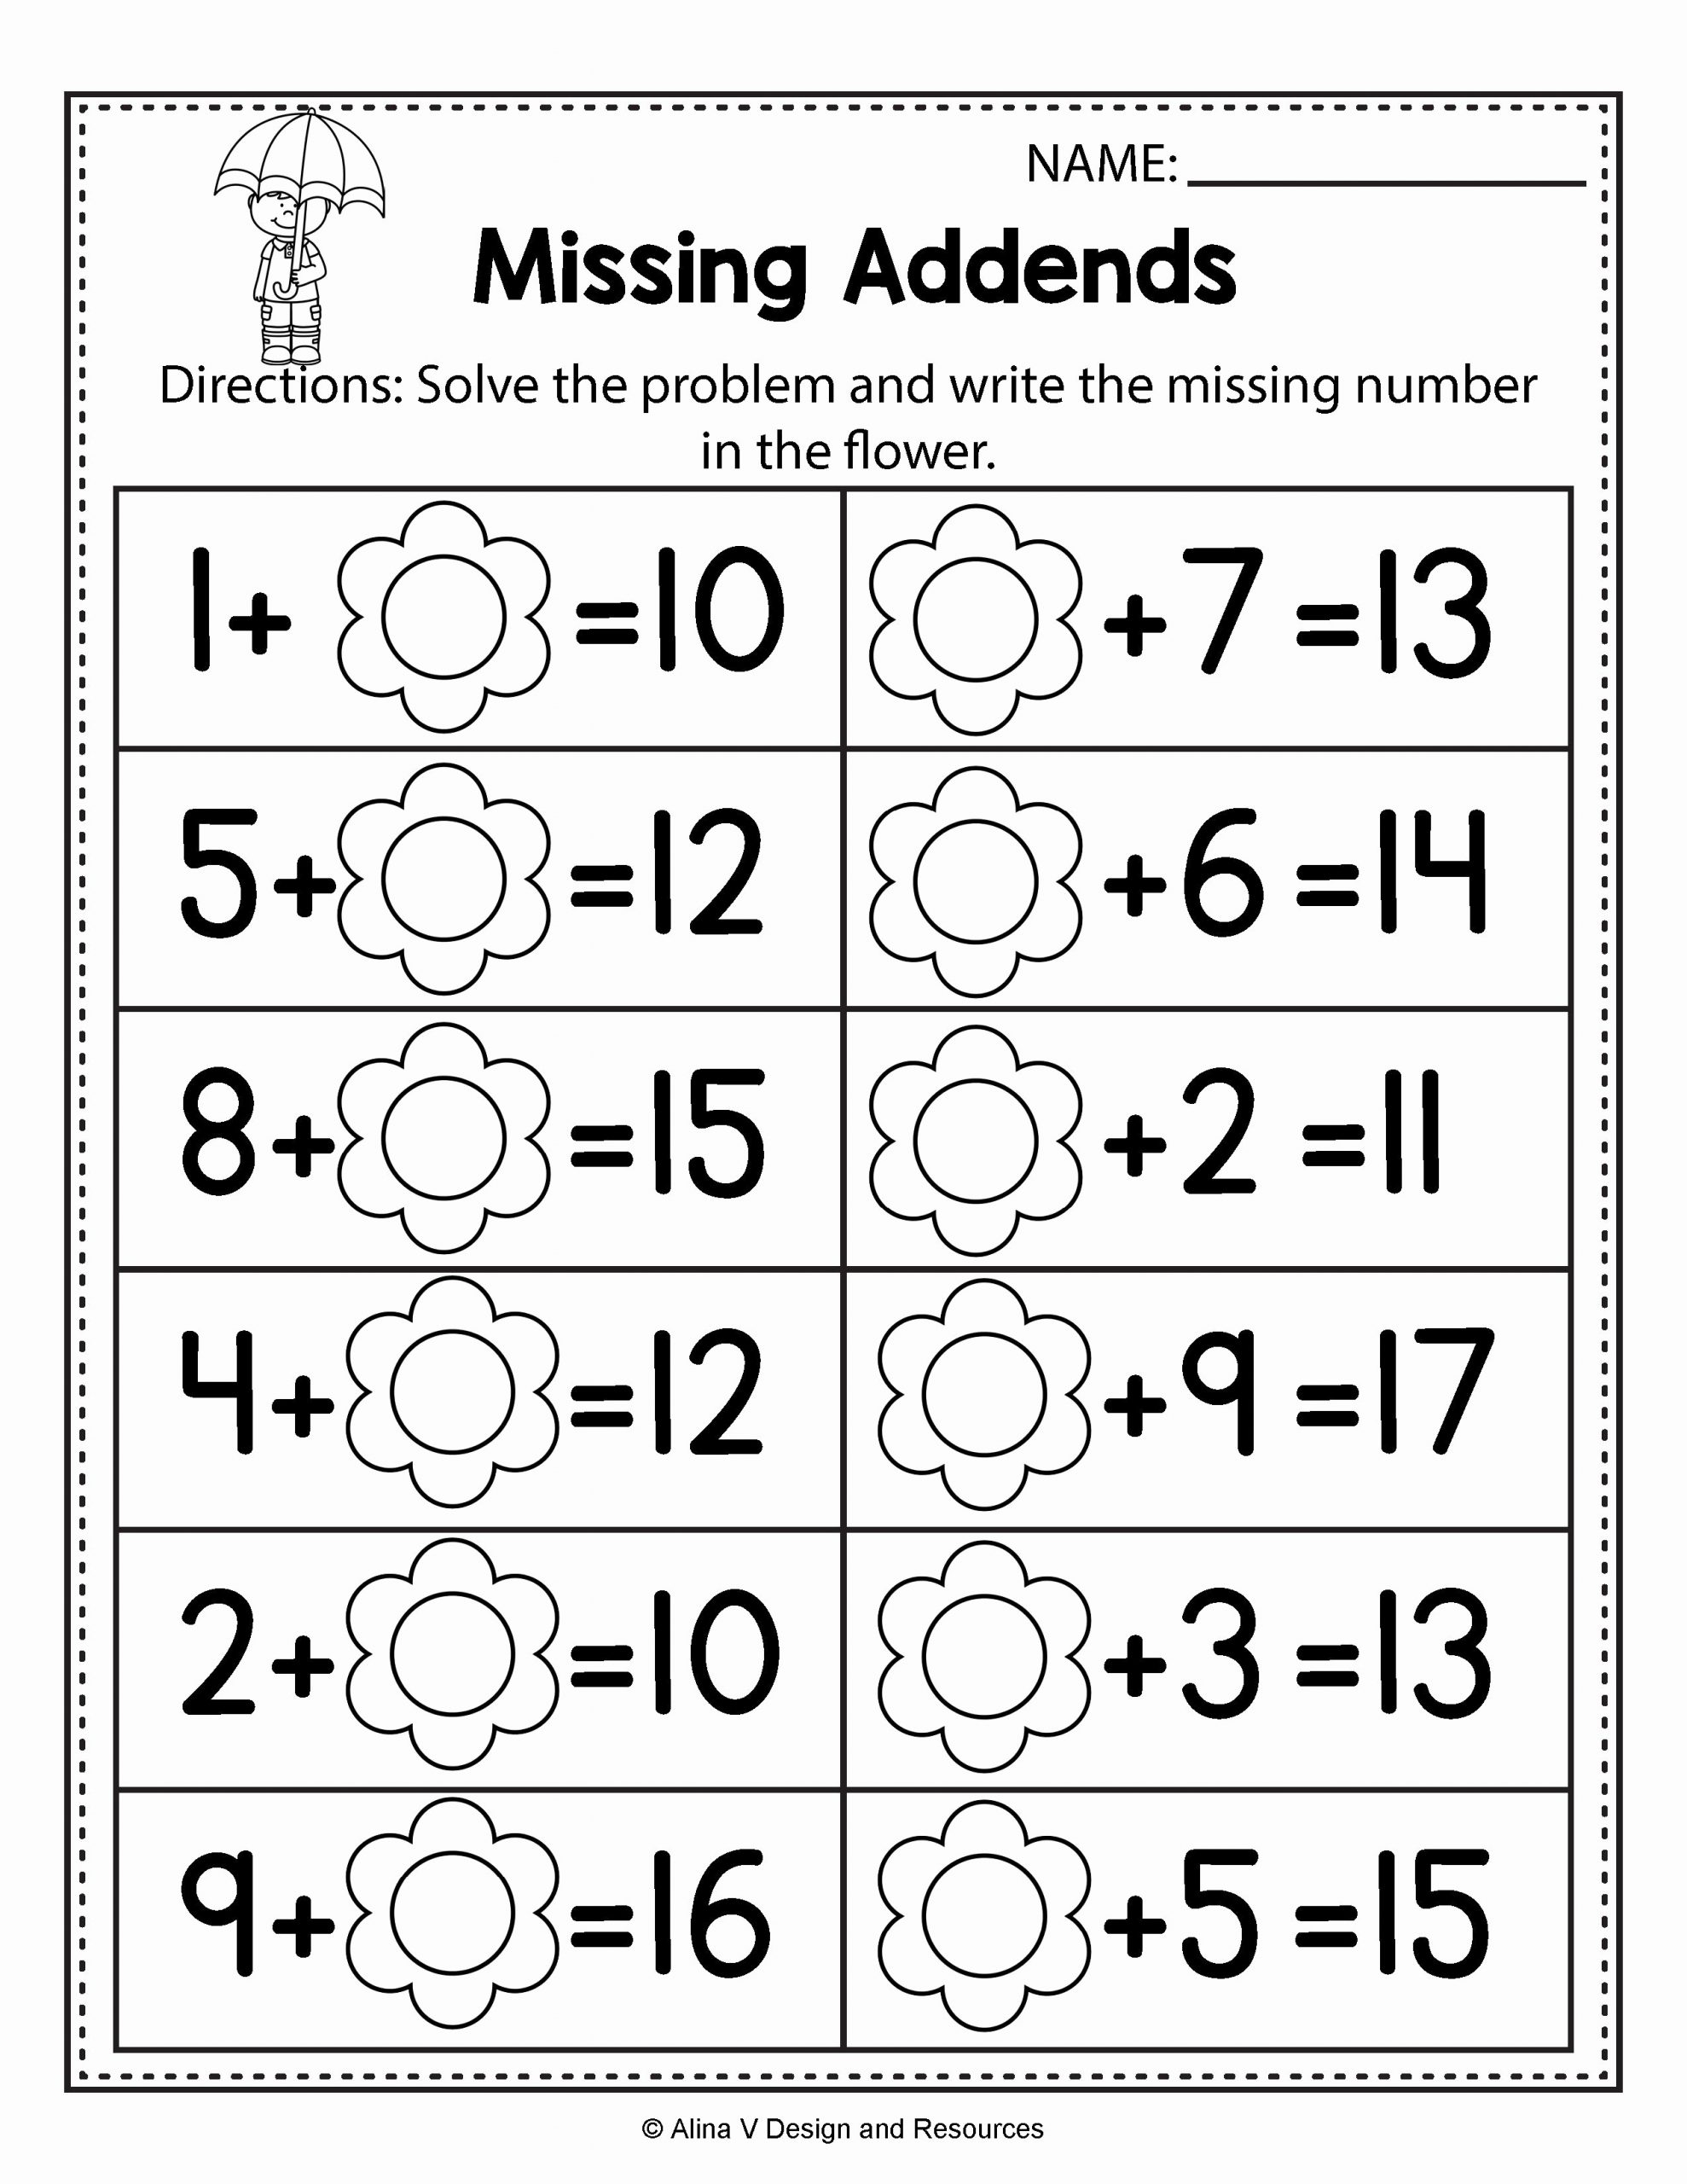 Missing Addend Worksheets Kindergarten Lovely Free Missing Addend Worksheets 1st Grade Free